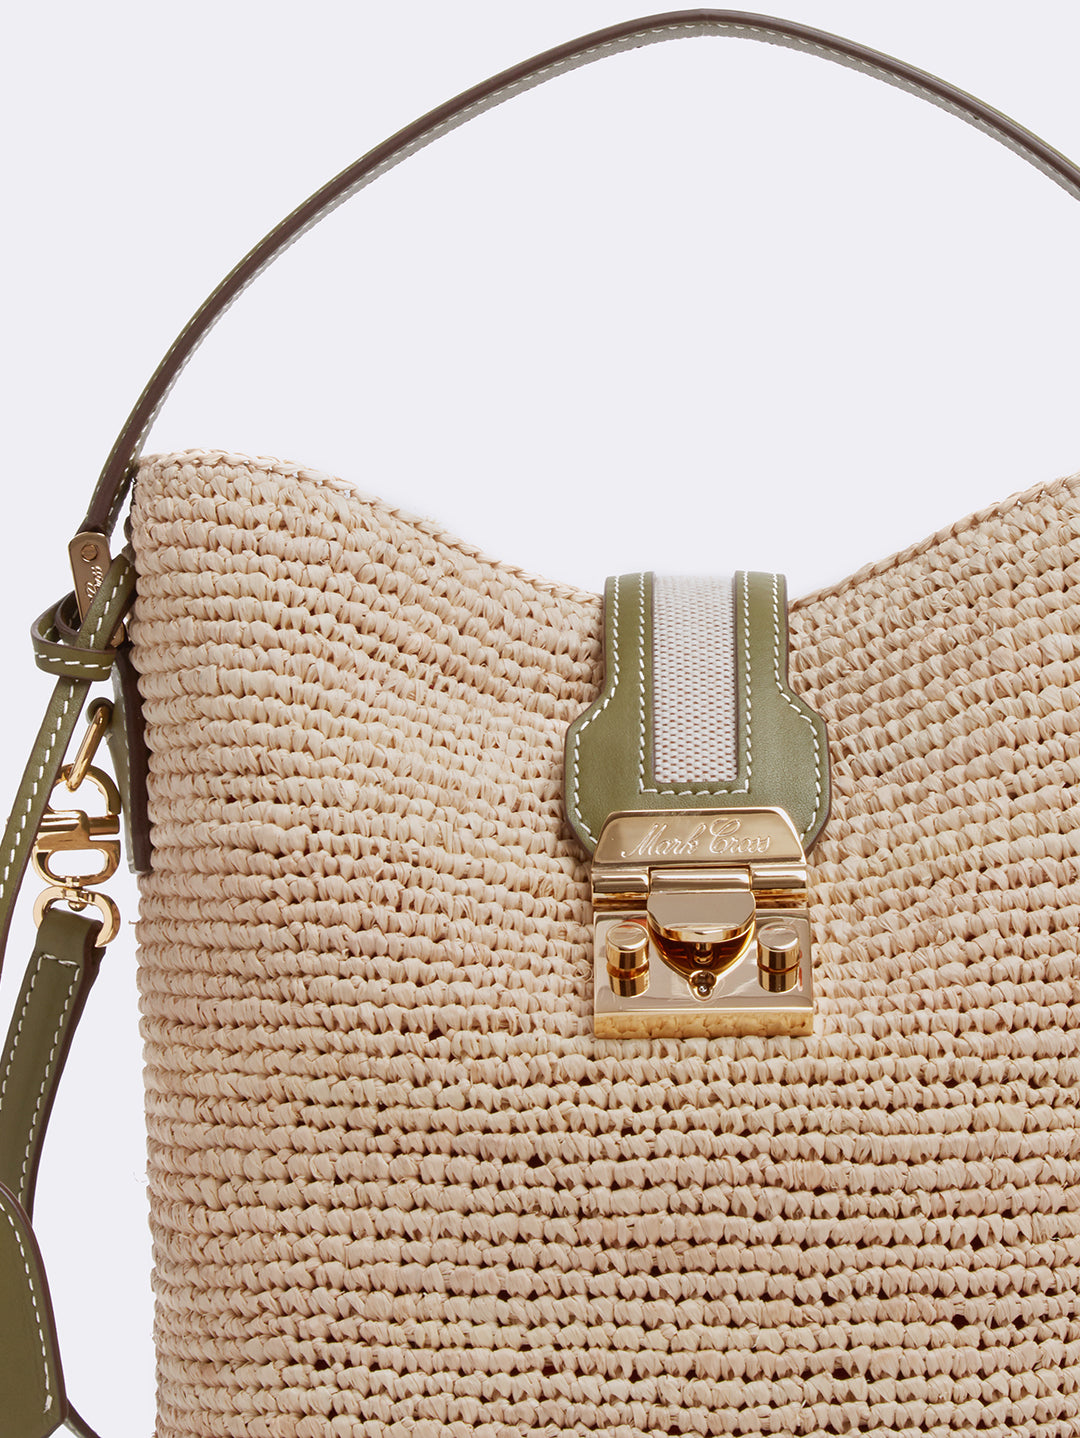 Mark Cross Murphy Raffia & Leather Bucket Bag Tumbled Grain Avocado / Birdseye / Natural Raffia Detail